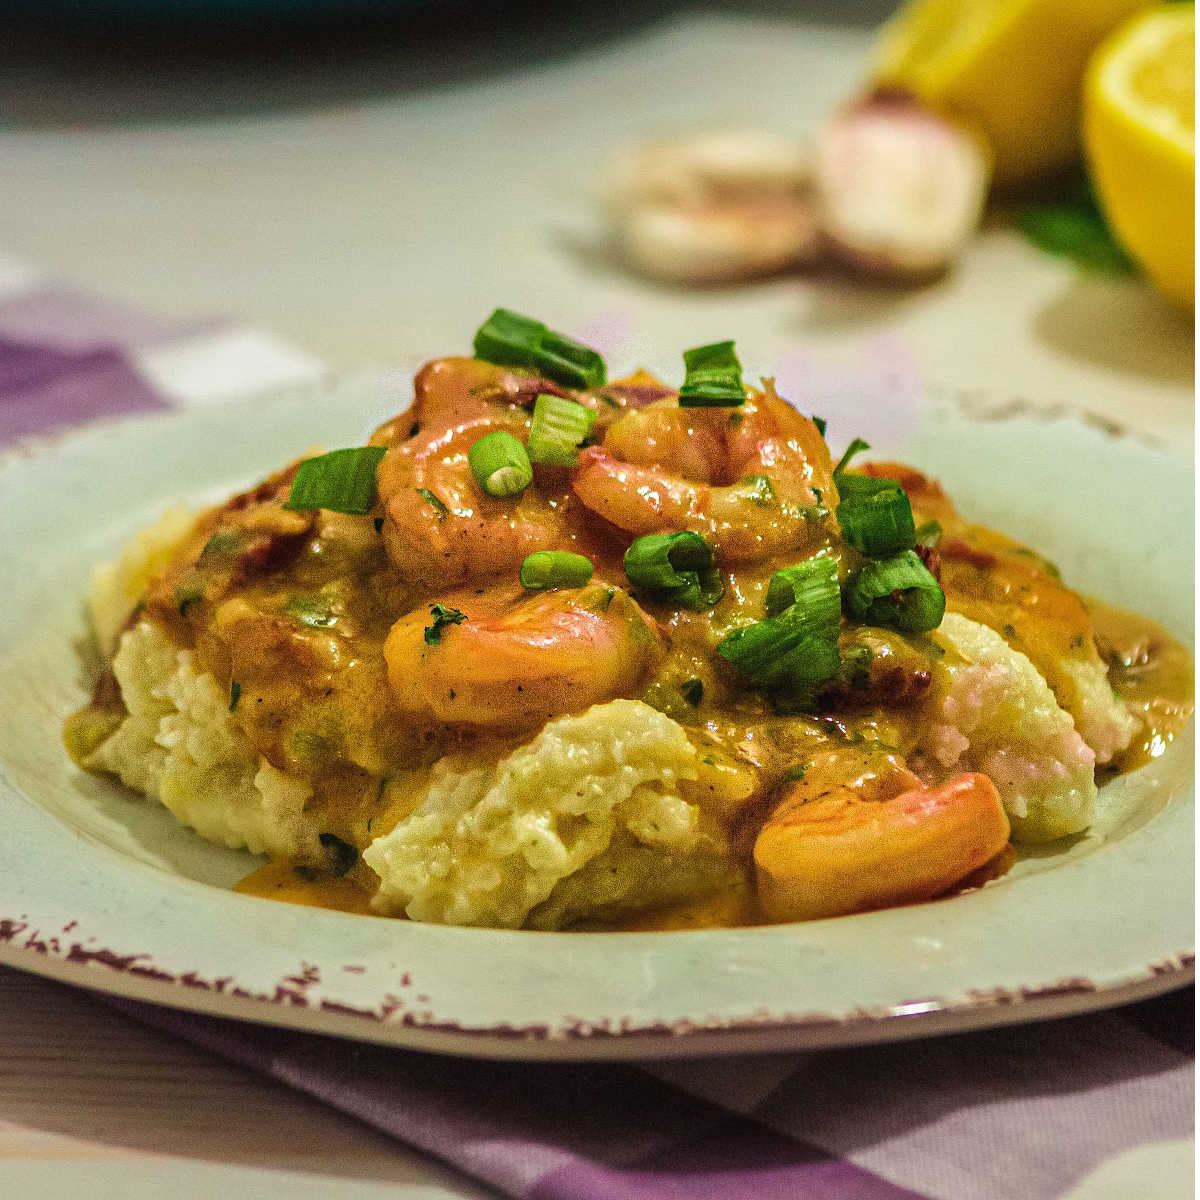 a plate of cheesy grits with some shrimp and bacon in a gravy poured over the top.